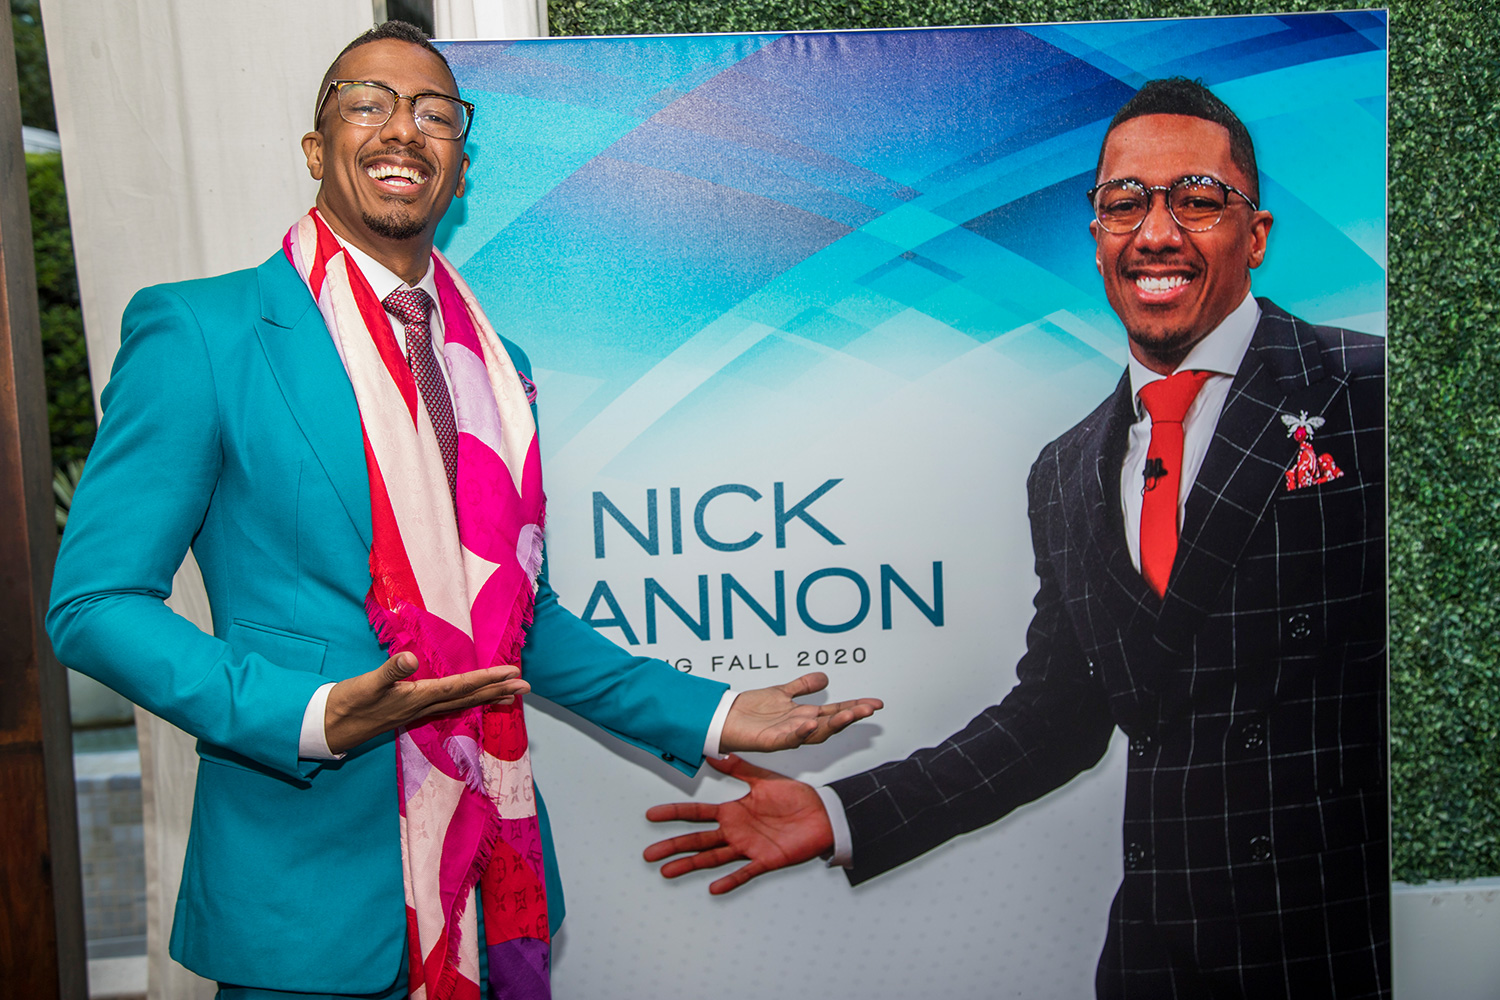 Nick Cannon at Dembar-Mercury and Fox TV Stations celebrate the launching of Nick Cannon`s Fall 2020 Talk Show